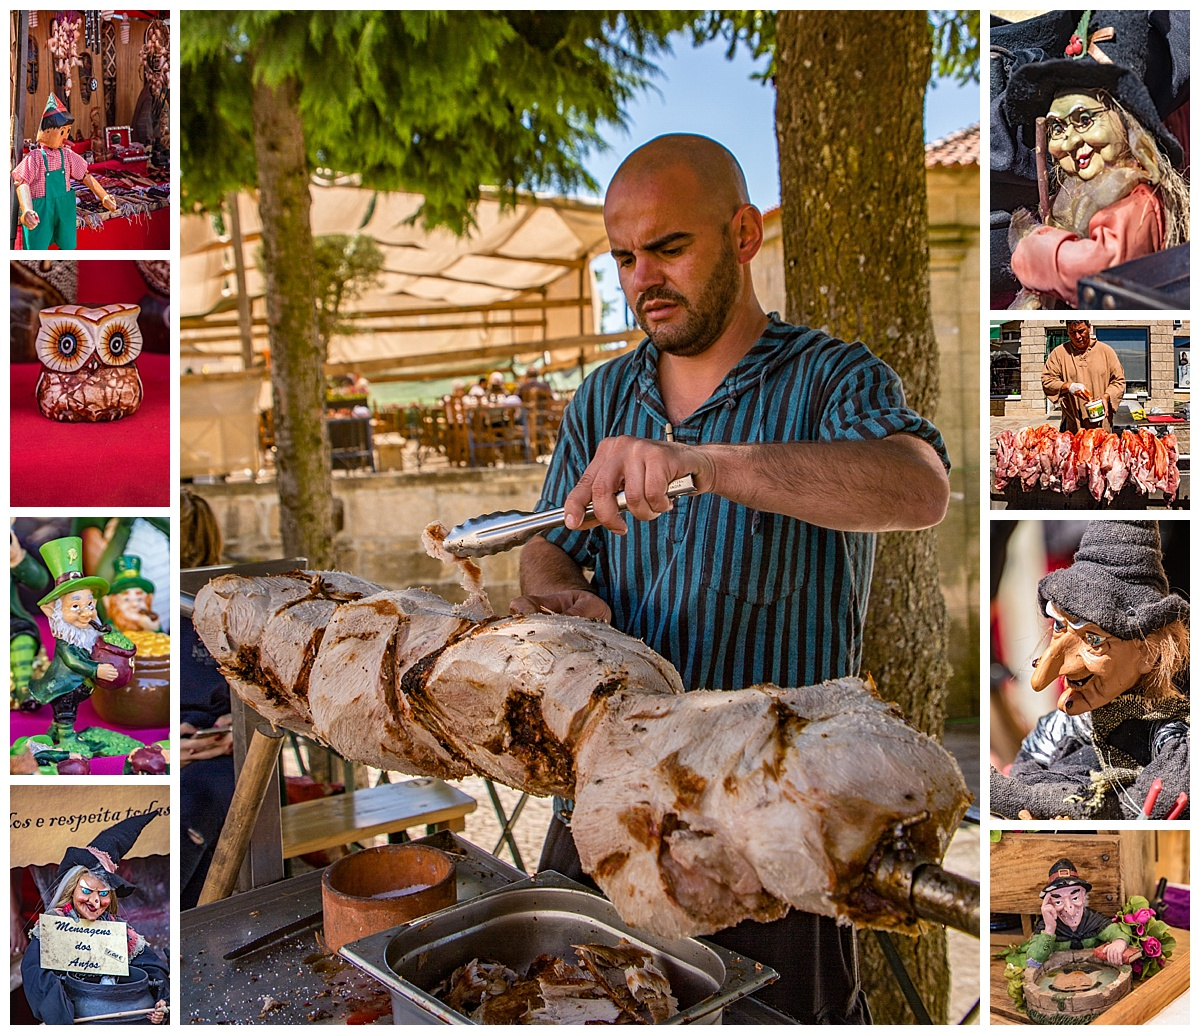 Feira Medieval Festival - food and crafts